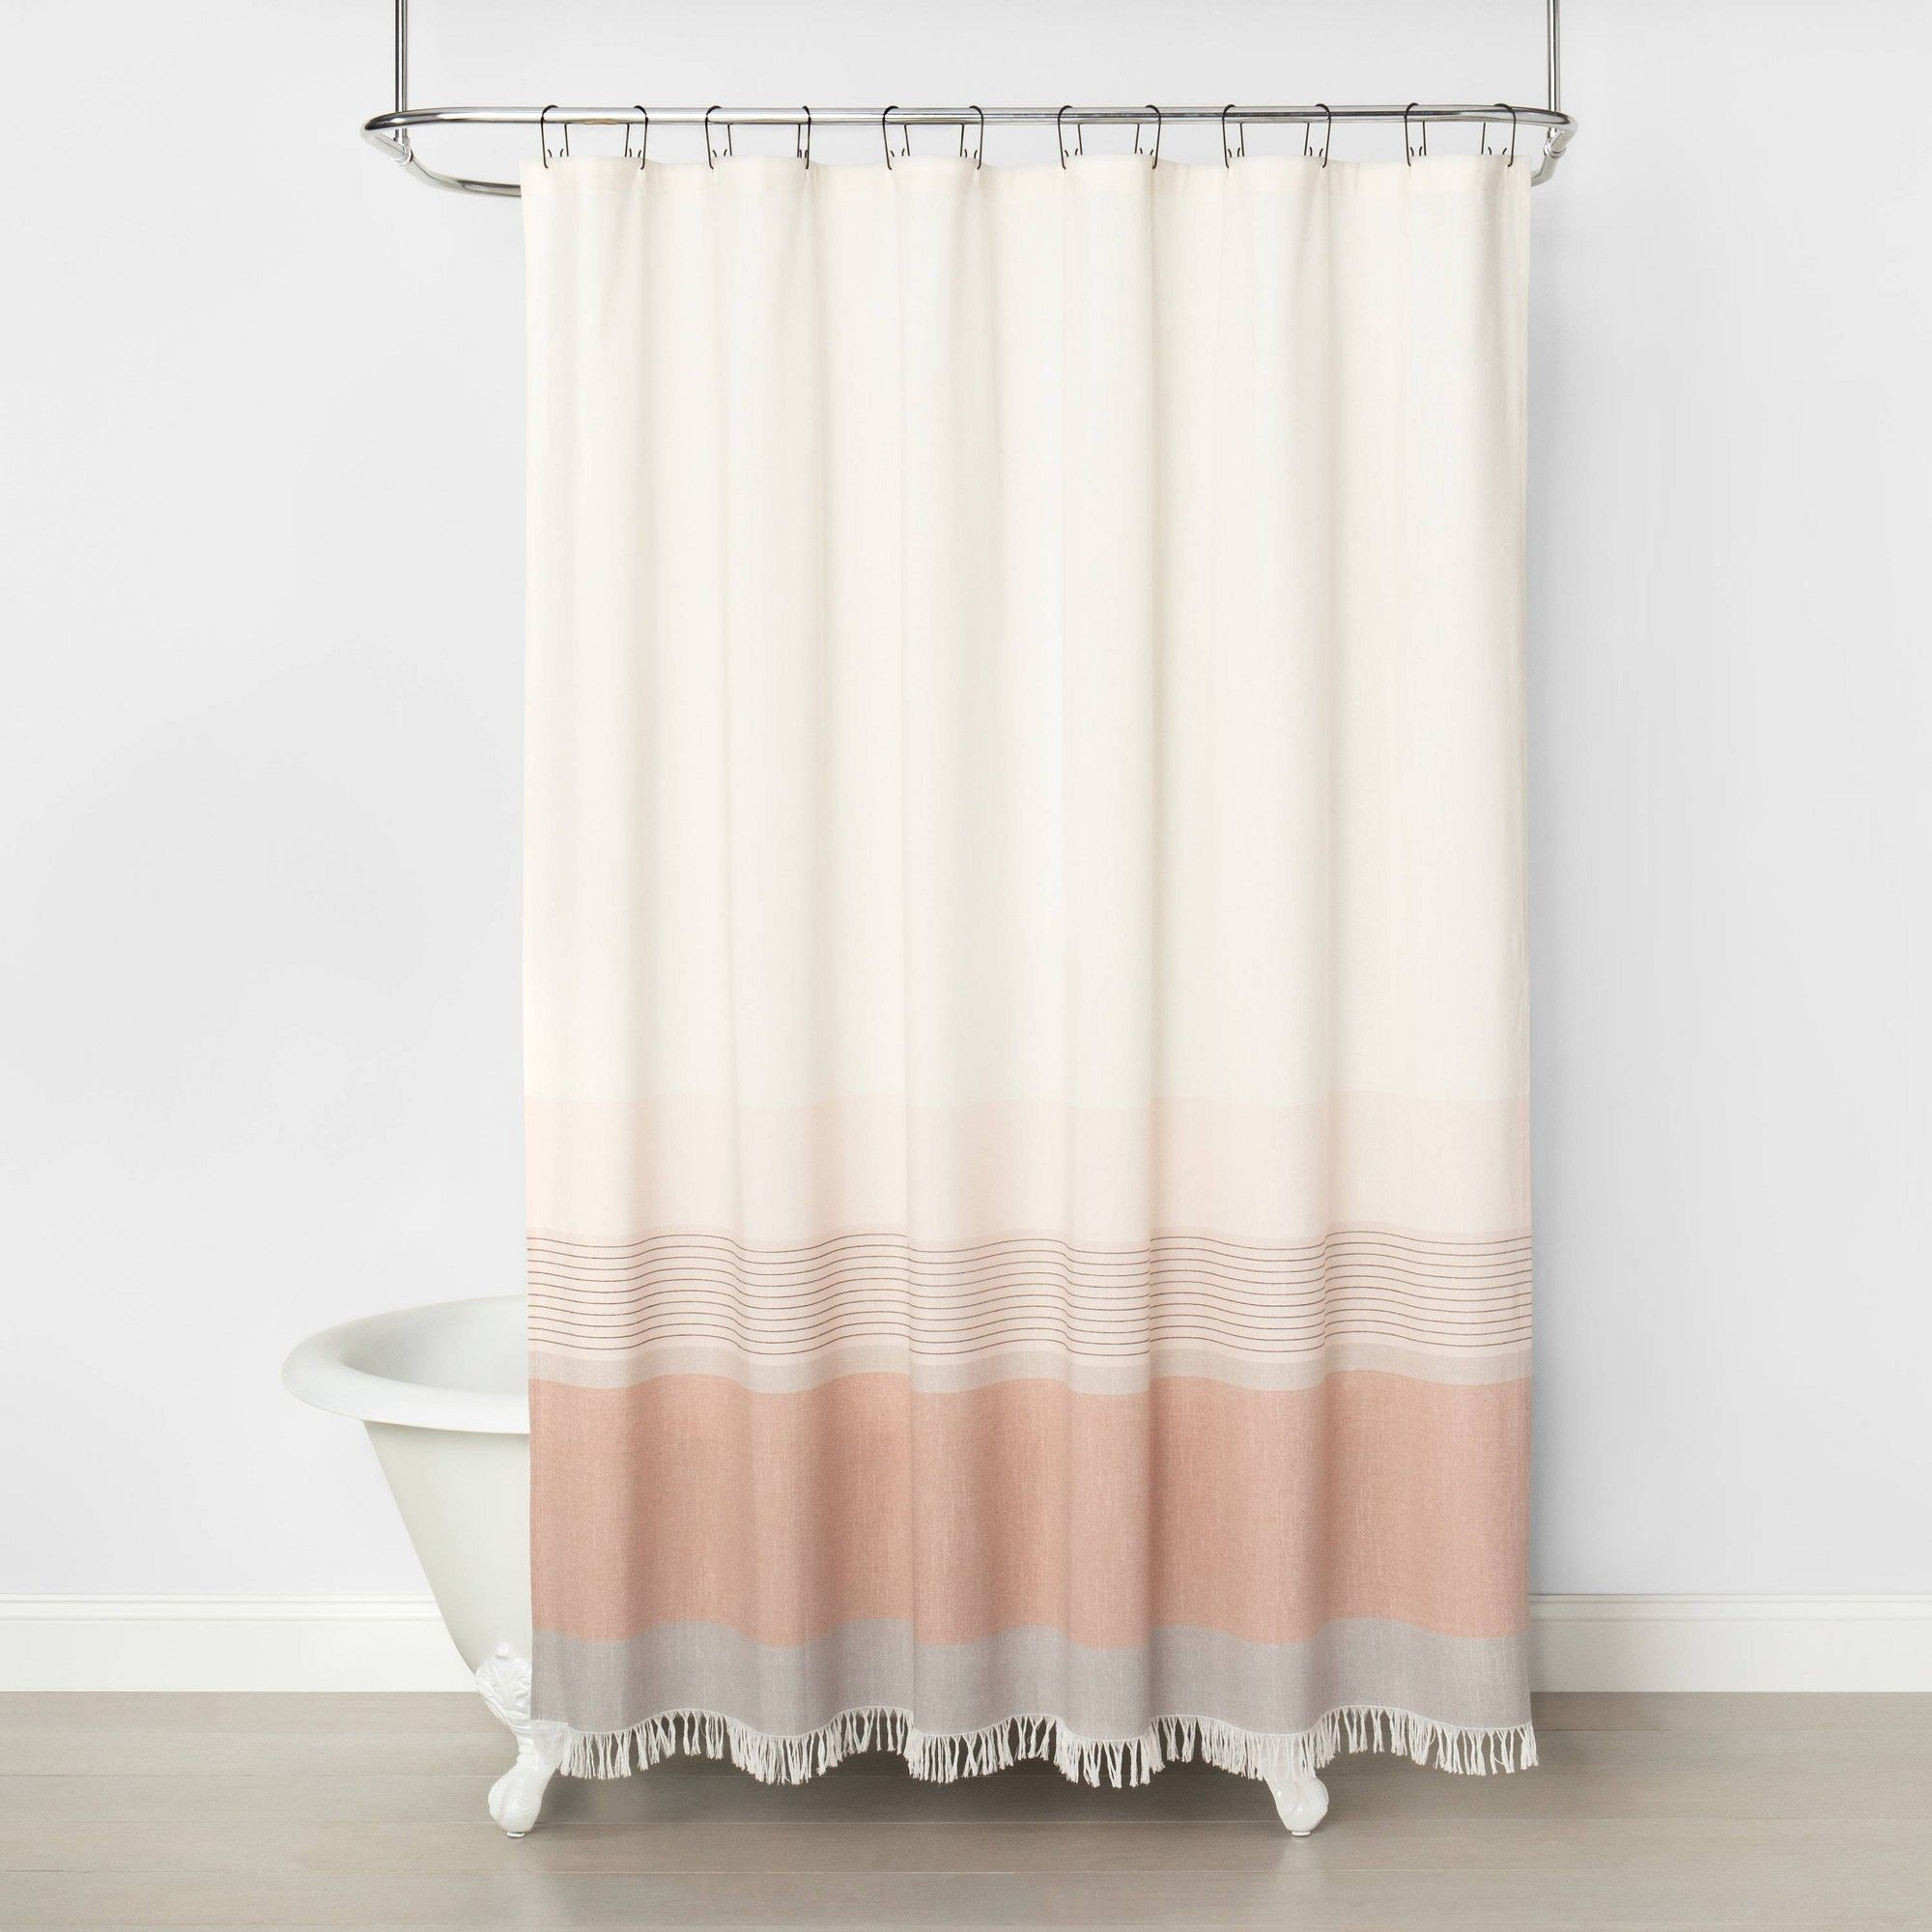 Ombre Shower Curtain Copper Hearth Hand With Magnolia In 2020 Ombre Shower Curtain Cute Shower Curtains Boho Shower Curtain